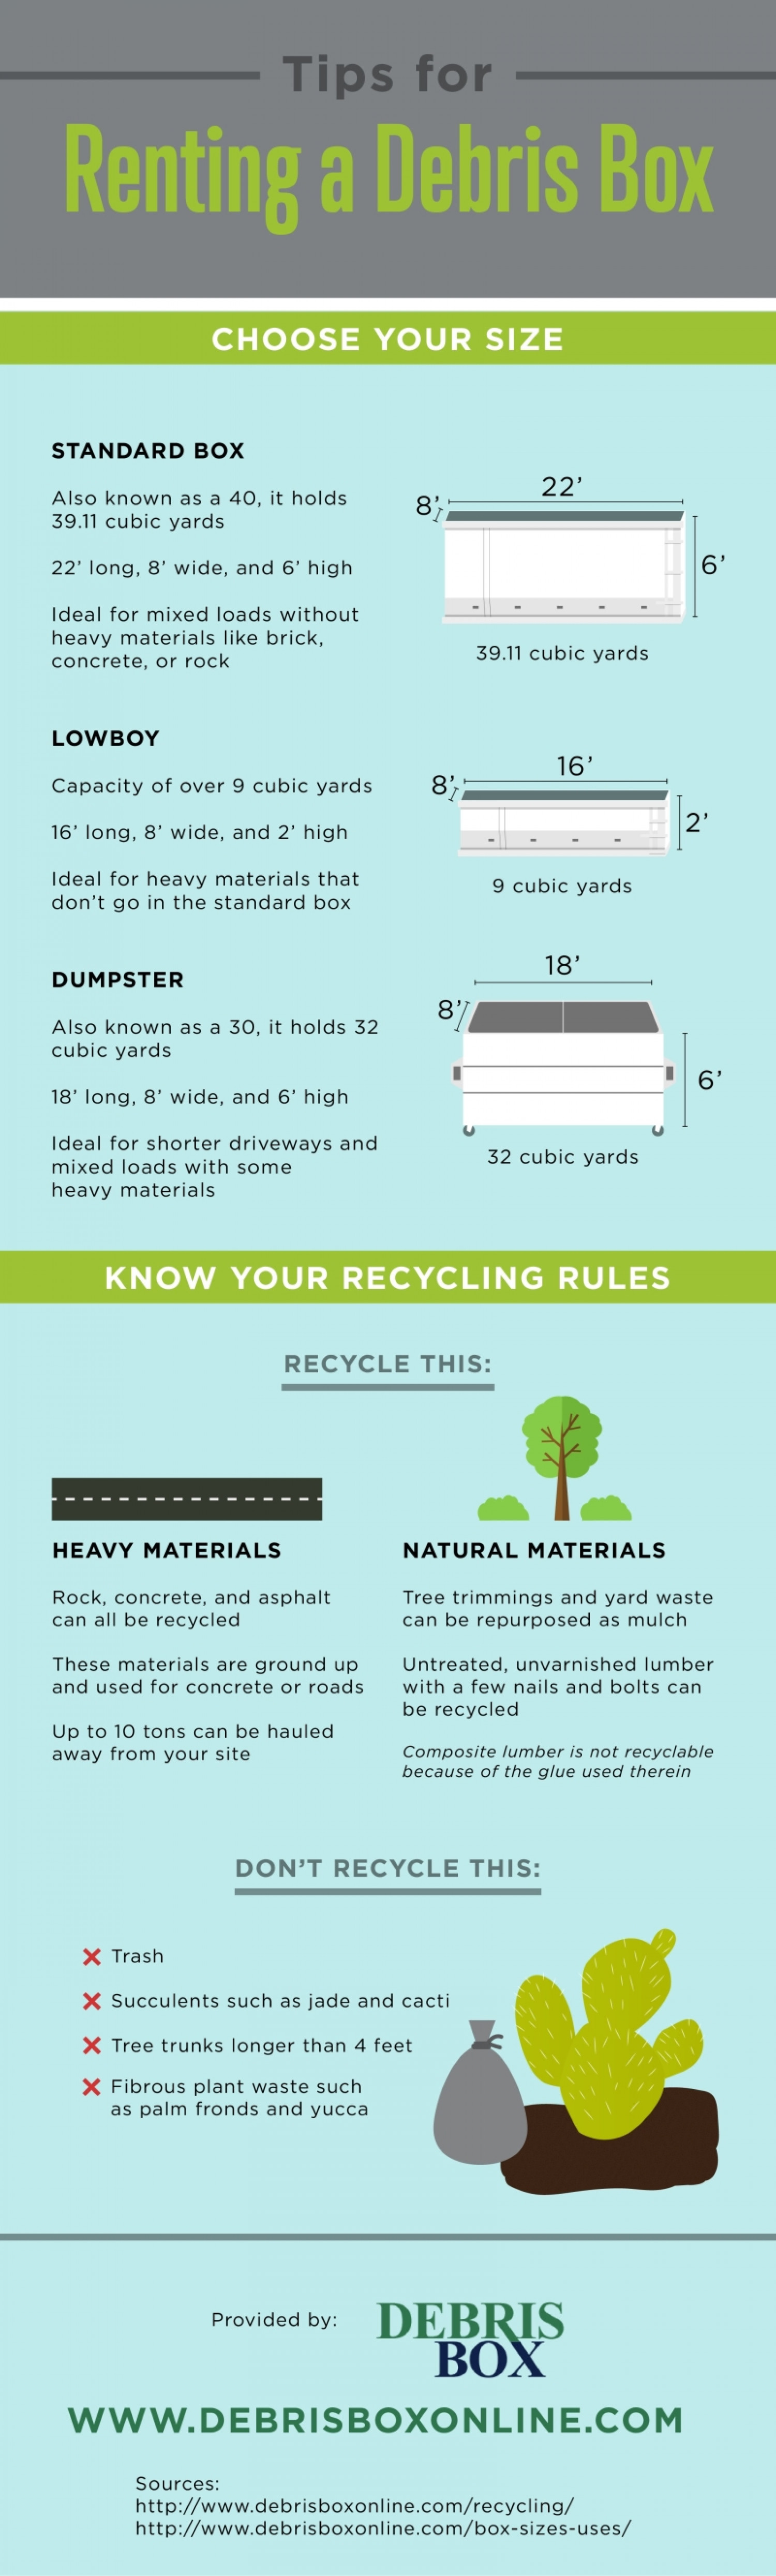 Tips for Renting a Debris Box  Infographic